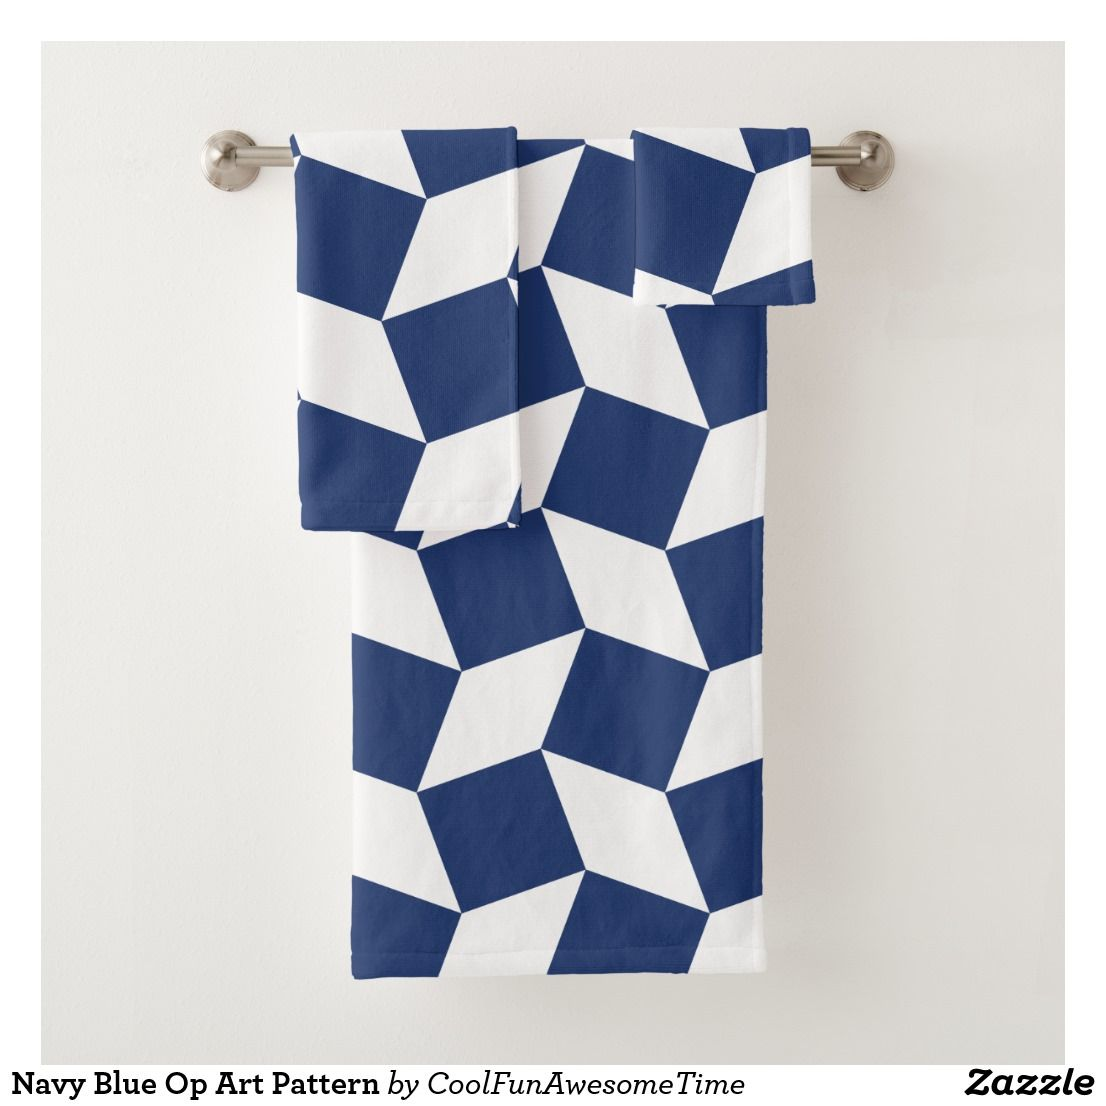 Navy Blue Op Art Pattern Bath Towels Follow The Link To Check